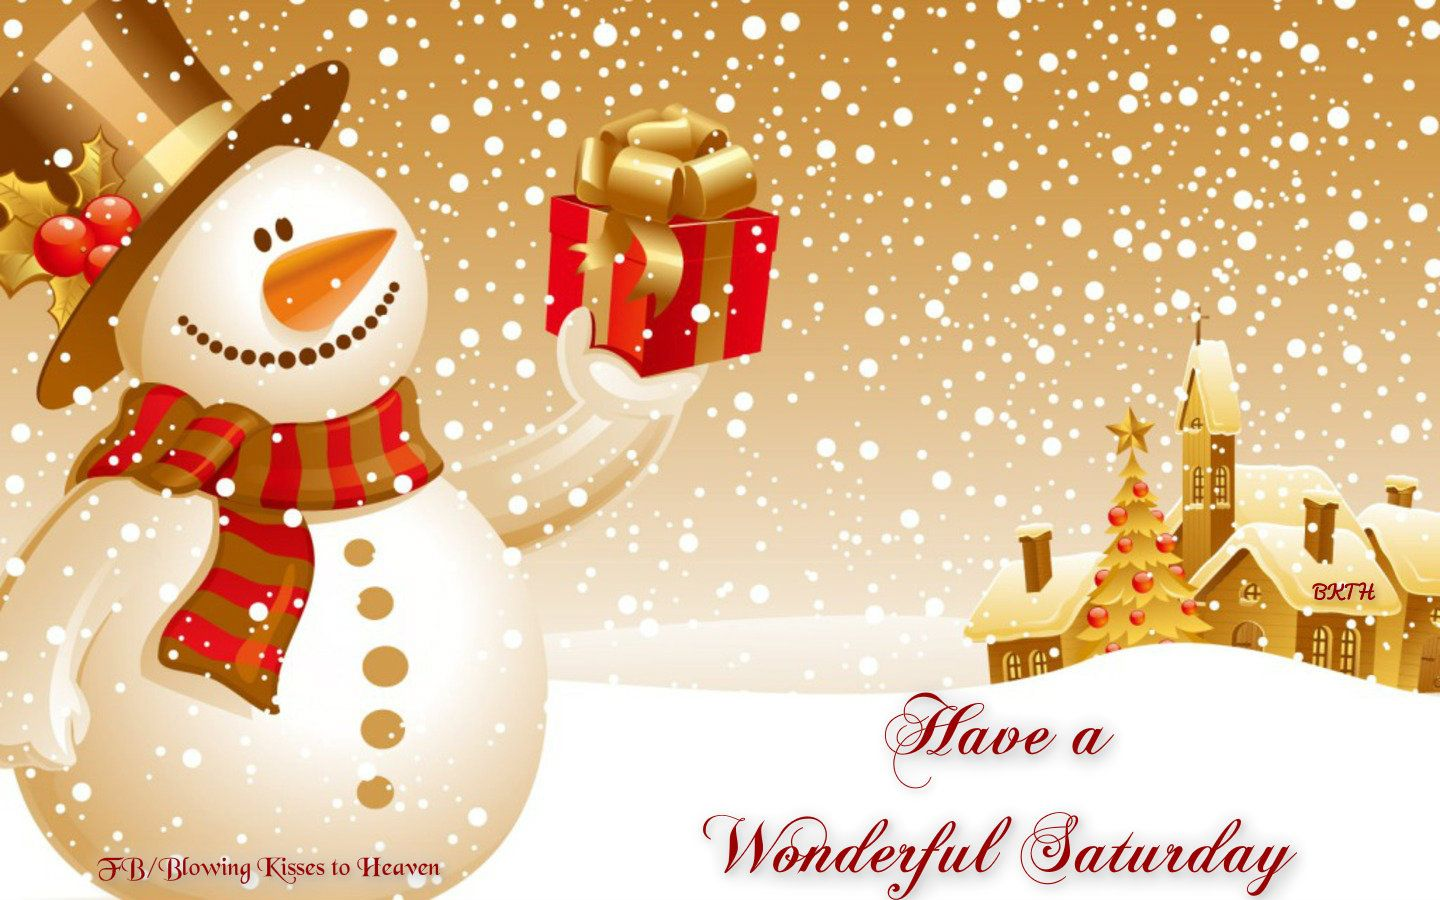 Merry Christmas To All Of Our Wonderful Clients And Their Families